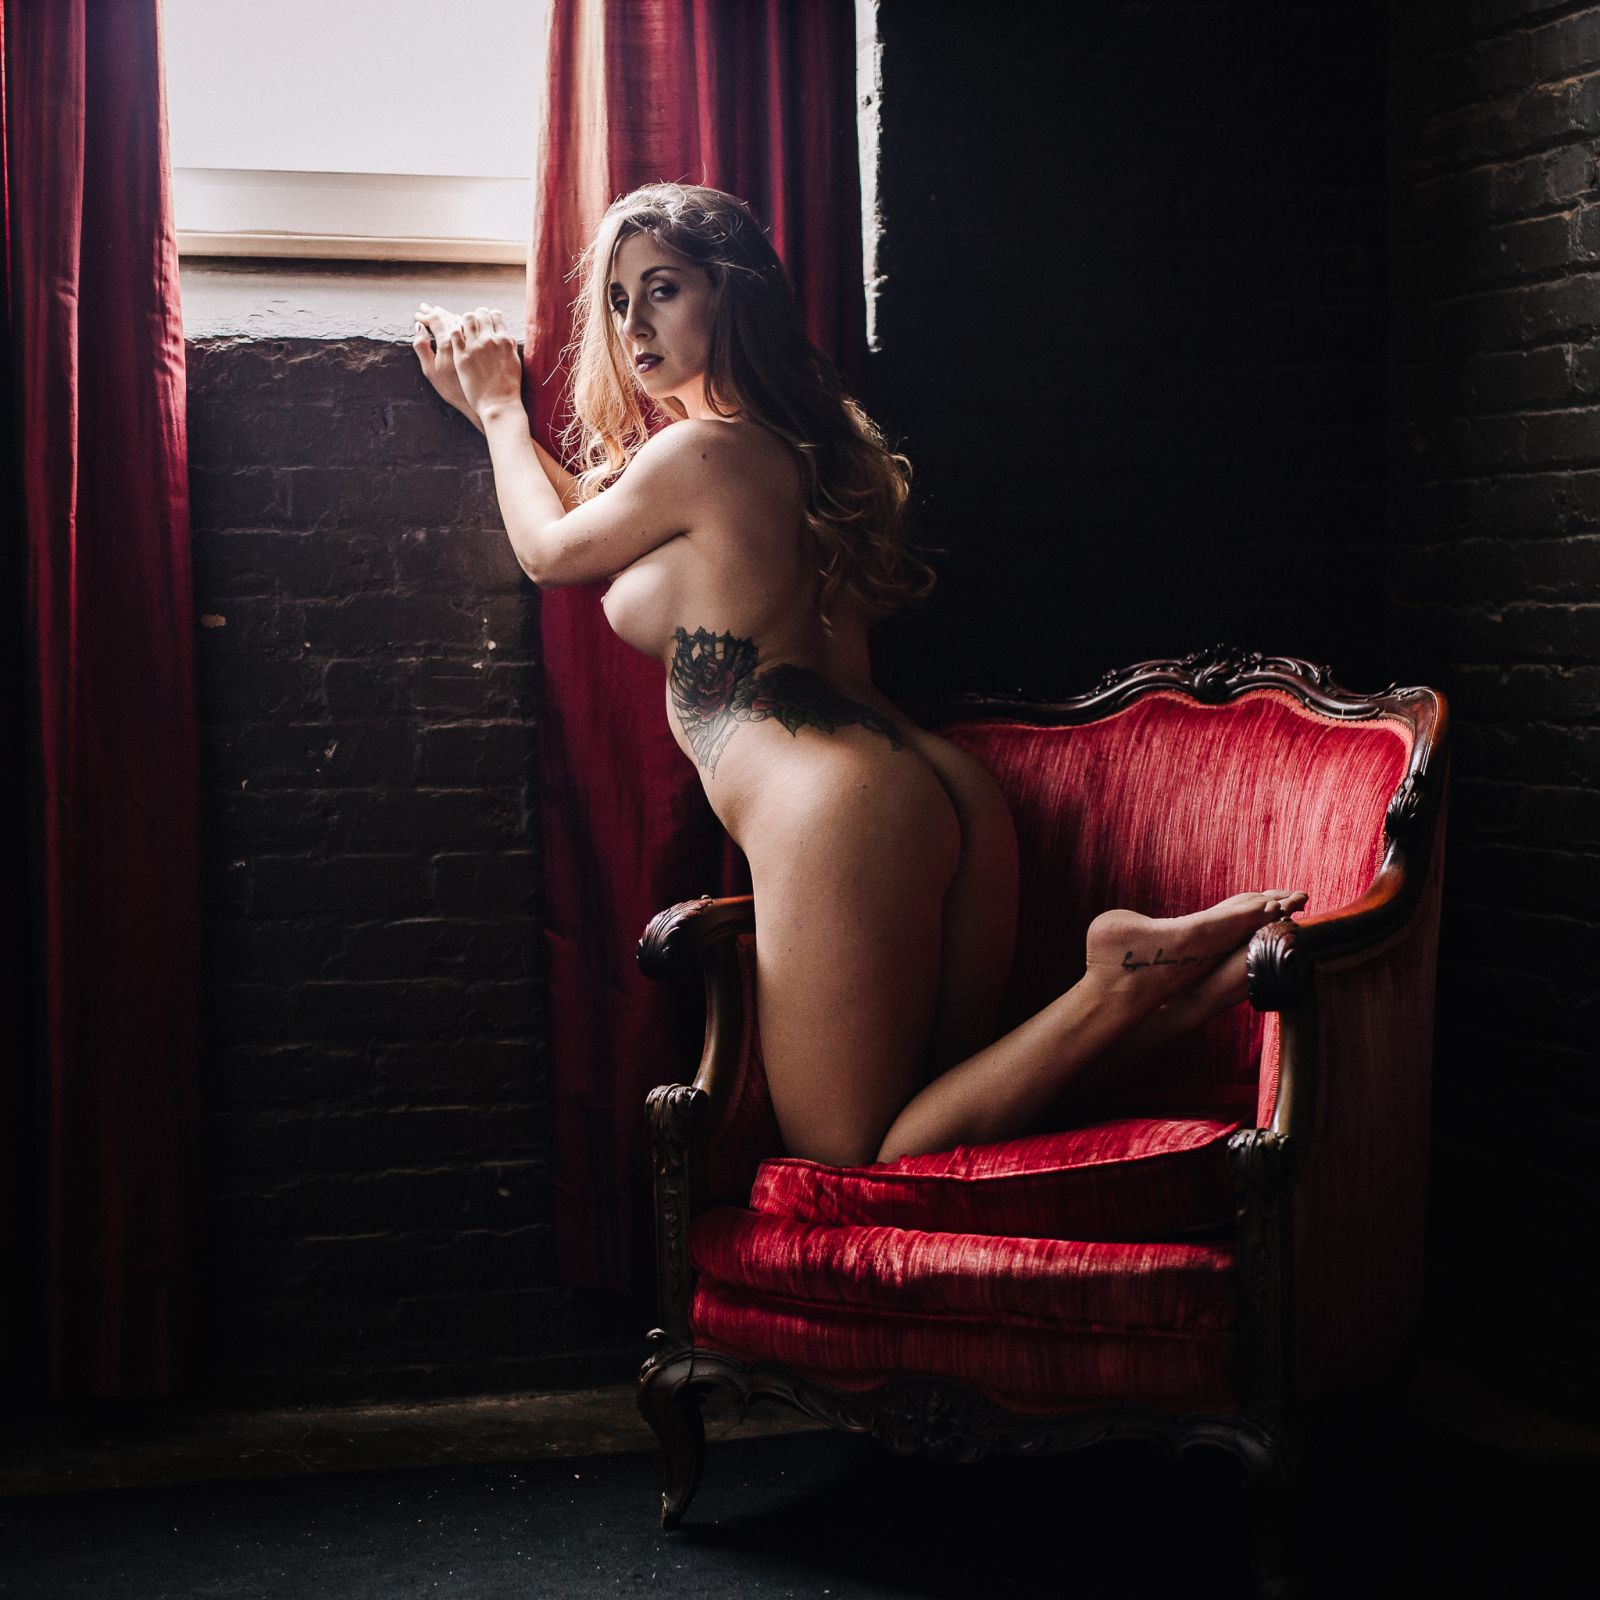 nude portrait artist boudoir photographer boudoir photography in dc maryland virginia west virginia